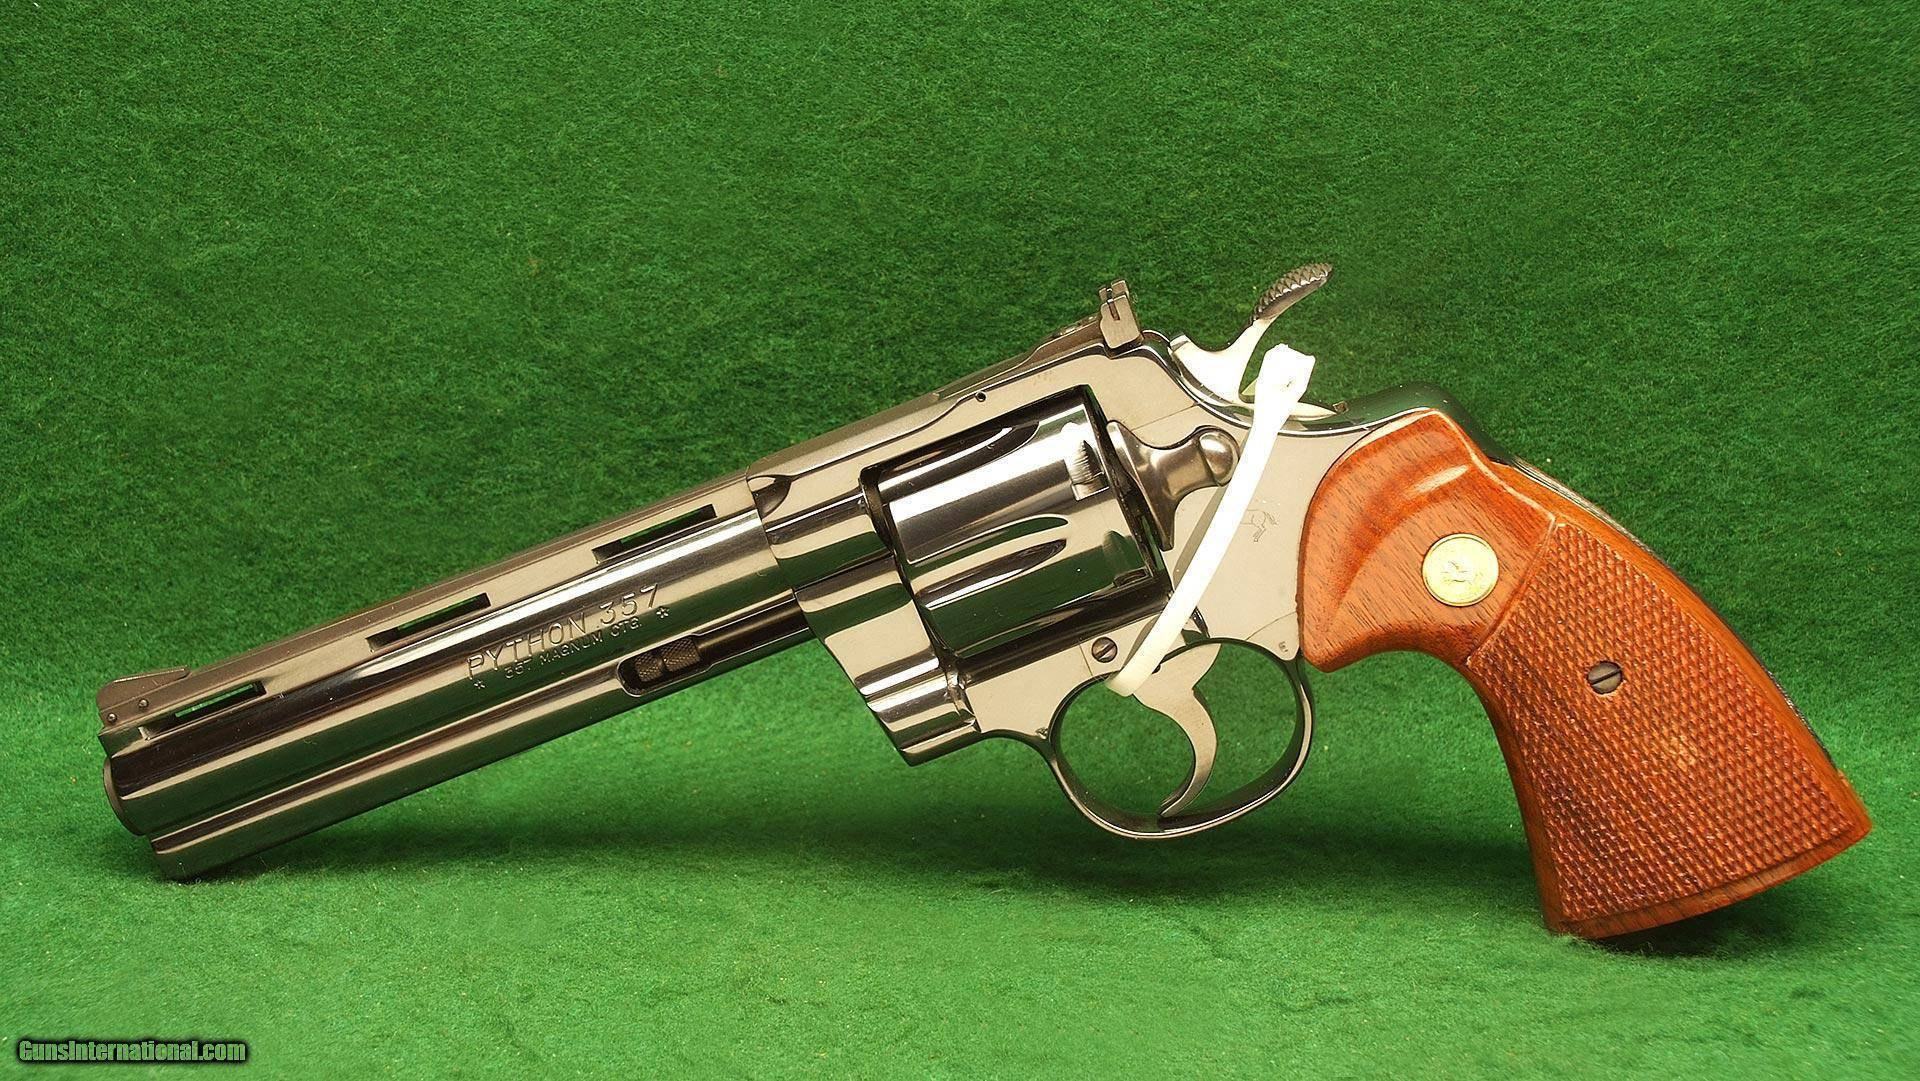 Colt python - internet movie firearms database - guns in movies, tv and video games